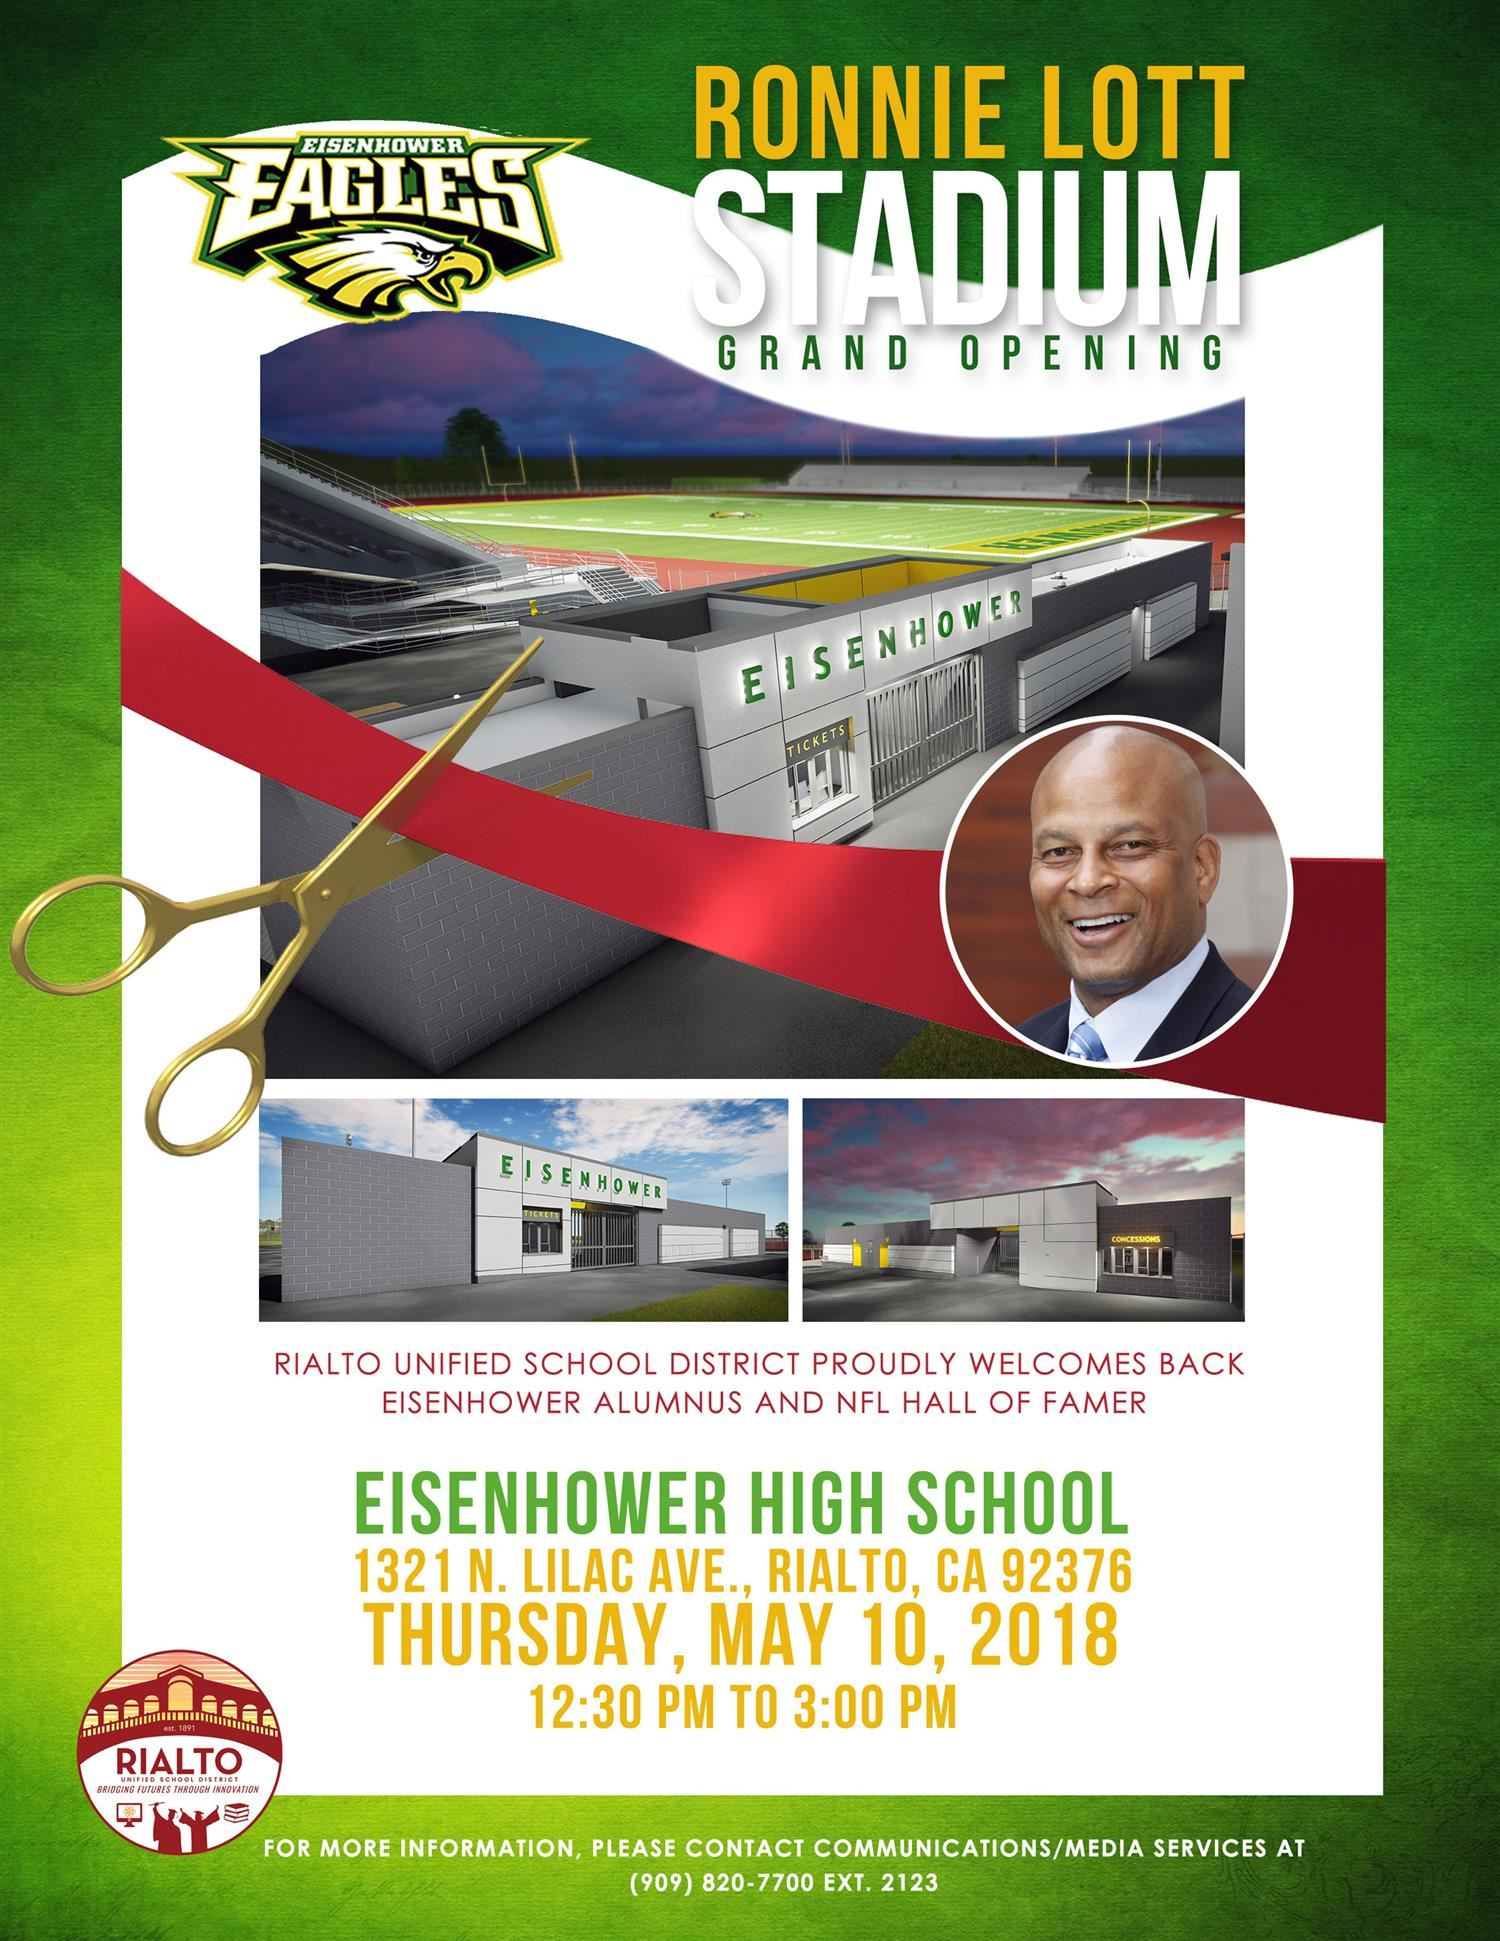 Ronnie Lott Stadium grand opening